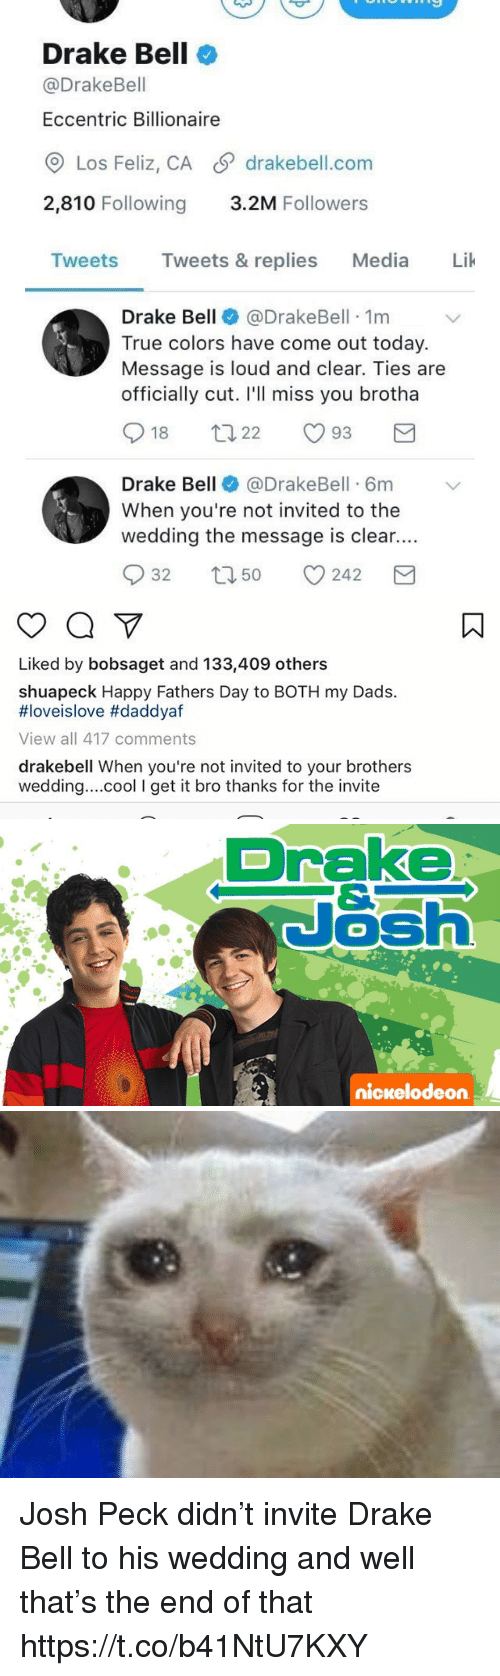 Ill Miss You: Drake Bell  @Drake Bell  Eccentric Billionaire  Los Feliz, CA S drakebell.com  2,810 Following  3.2M Followers  Tweets  Tweets & replies  Media  Lik  Drake Bell  @Drake Bell 1m  True colors have come out today.  Message is loud and clear. Ties are  officially cut. I'll miss you brotha  S 18  93  22  Drake Bell  @DrakeBell 6m v  When you're not invited to the  wedding the message is clear.  S 32 t 50  242  M   Liked by bobsaget and 133,409 others  shuapeck Happy Fathers Day to BOTH my Dads.  HIoveislove #daddyaf  View all 417 comments  drakebell When you're not invited to your brothers  wedding... cool l get it  bro thanks for the invite   Drake  Nash  nickelodeon Josh Peck didn't invite Drake Bell to his wedding and well that's the end of that https://t.co/b41NtU7KXY